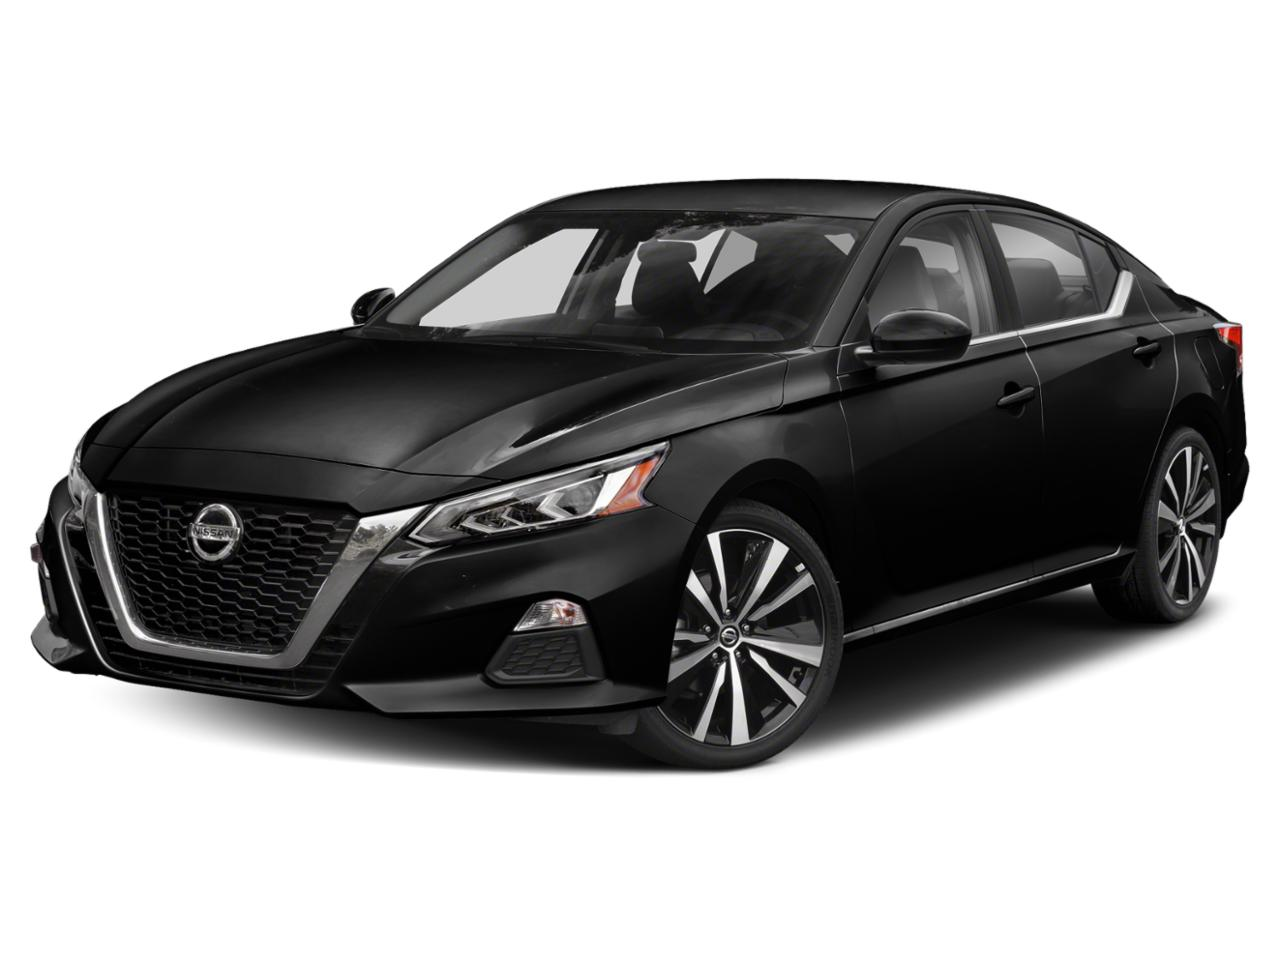 2019 Nissan Altima Vehicle Photo in Owensboro, KY 42303